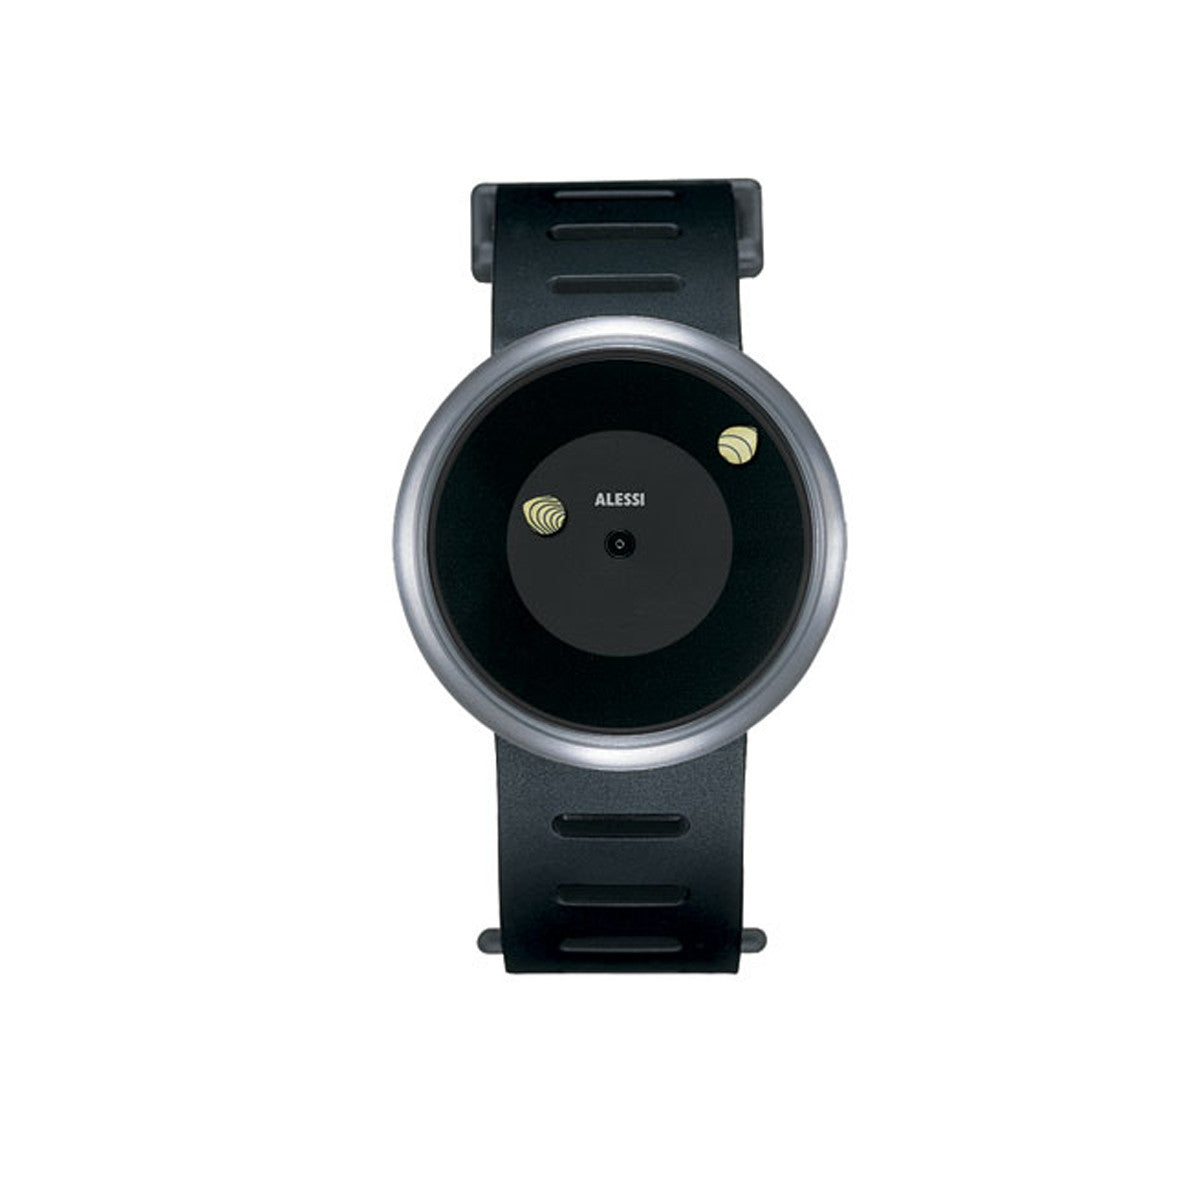 replacement strap for look no hands watch by alessi watches  - replacement strap for look no hands watch by alessi watches